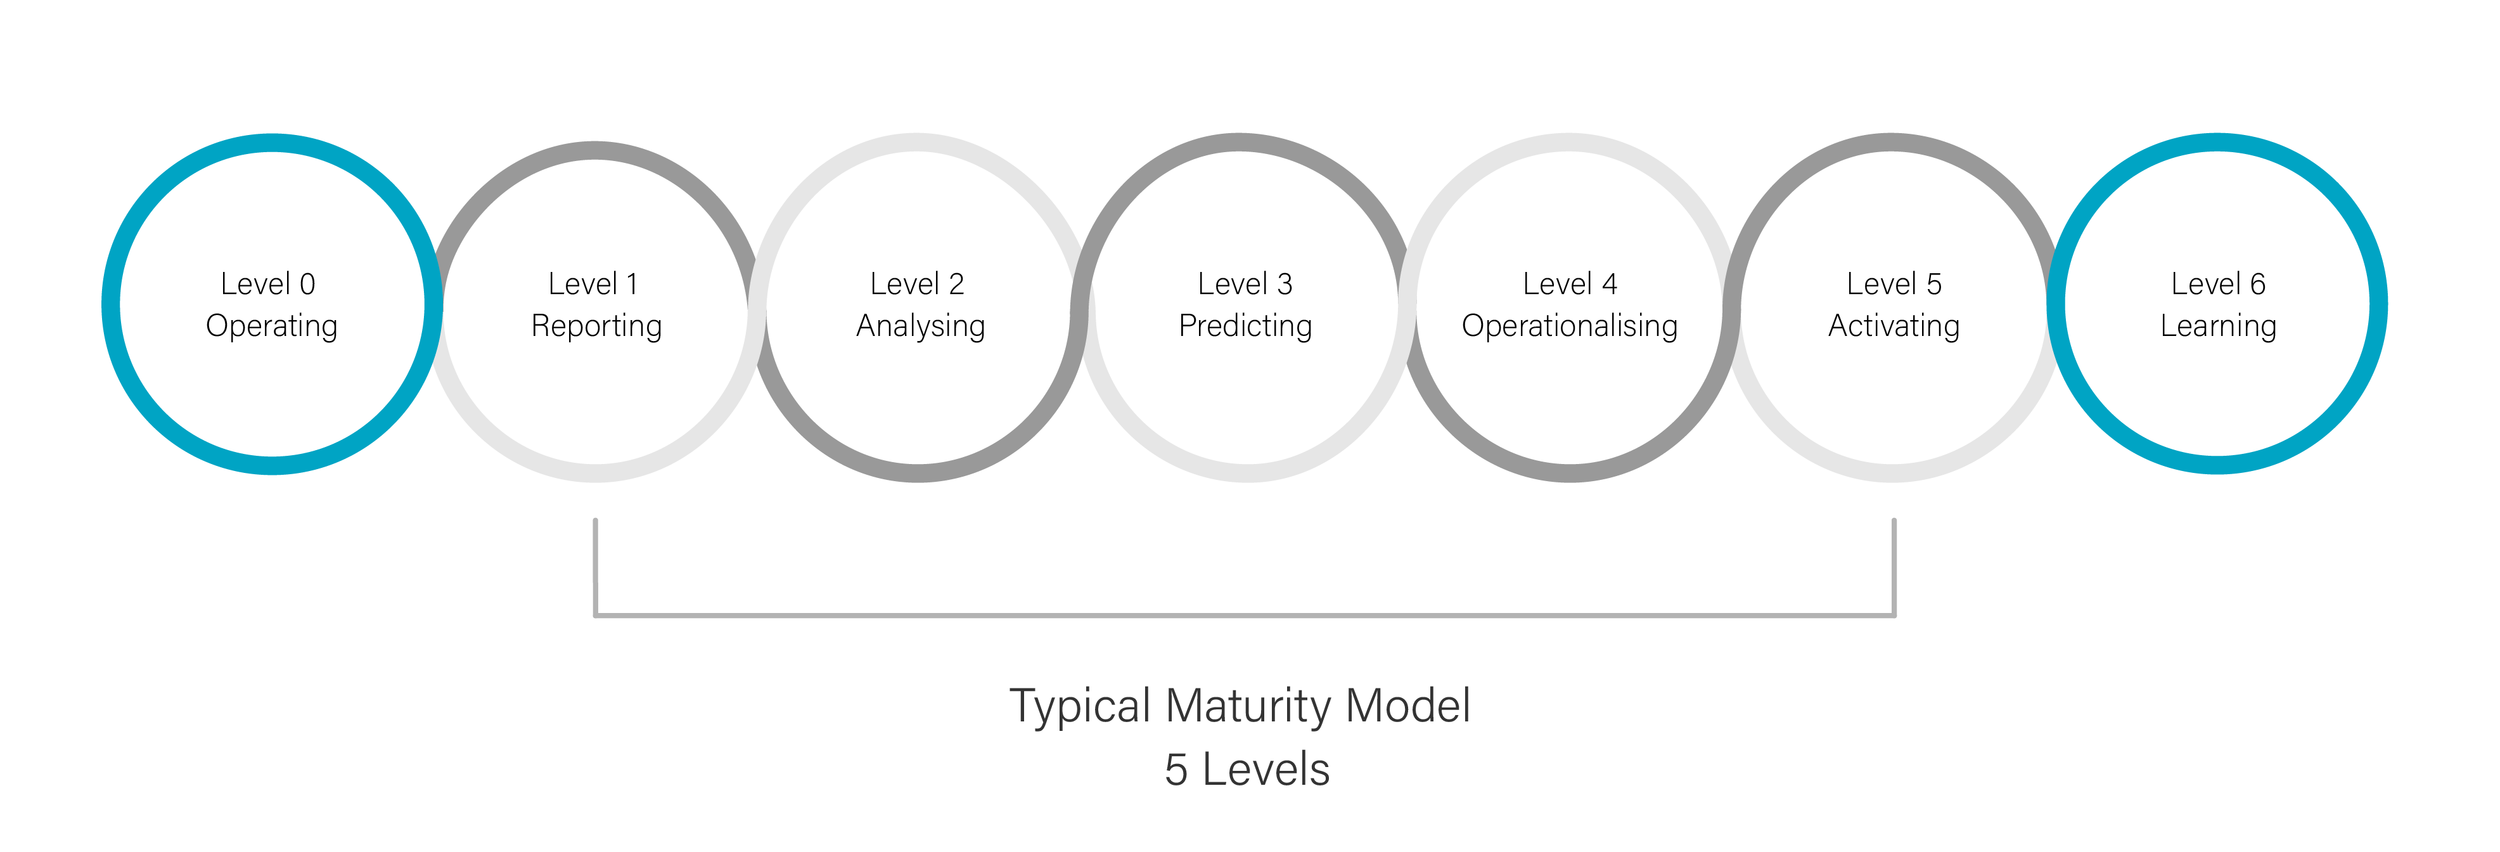 Analytical Learning vldb apps | cloud | data - analytical maturity models